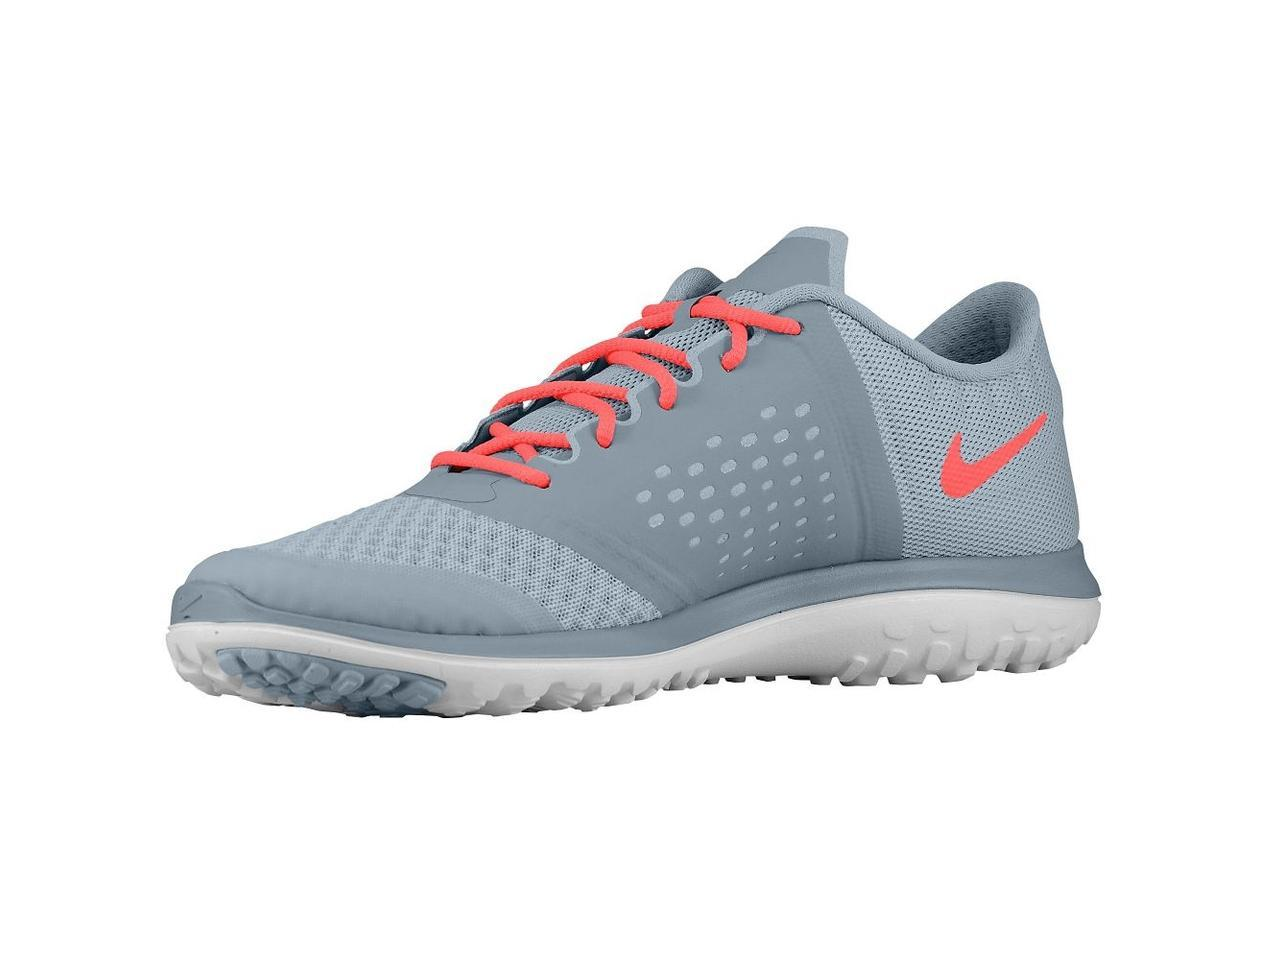 competitive price a1da9 64d63 ... wholesale nike womens womens nike fs lite run 2 low top lace up running  sneaker 4ff6b